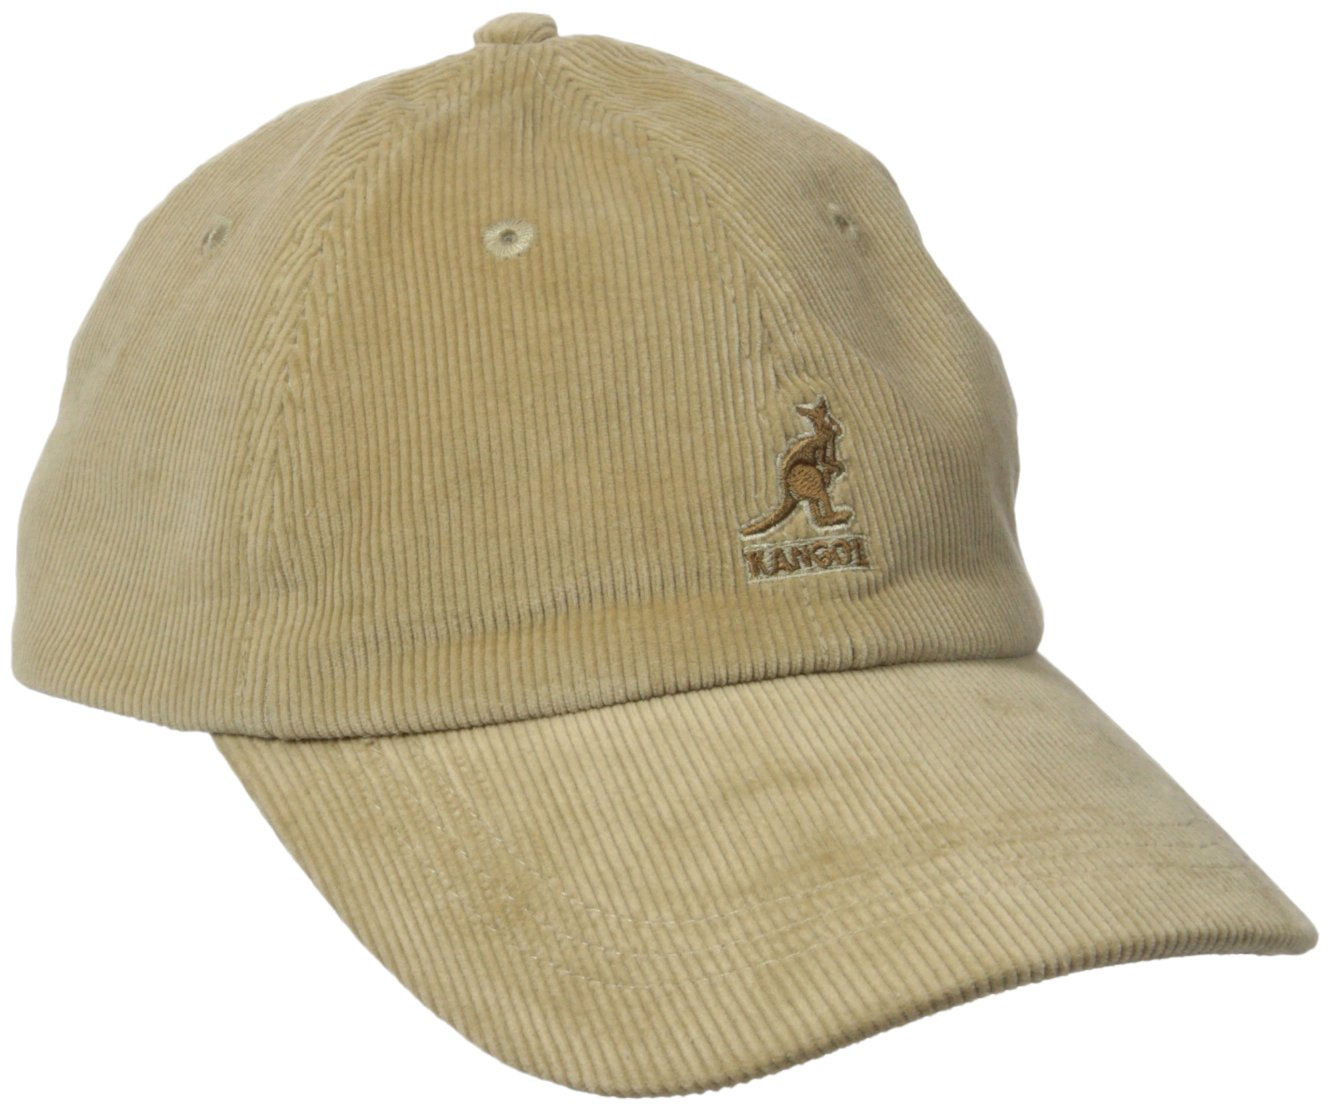 Kangol Men's Cord Baseball, Crafted with Fine Corduroy, Beige (One Size Fits Most)